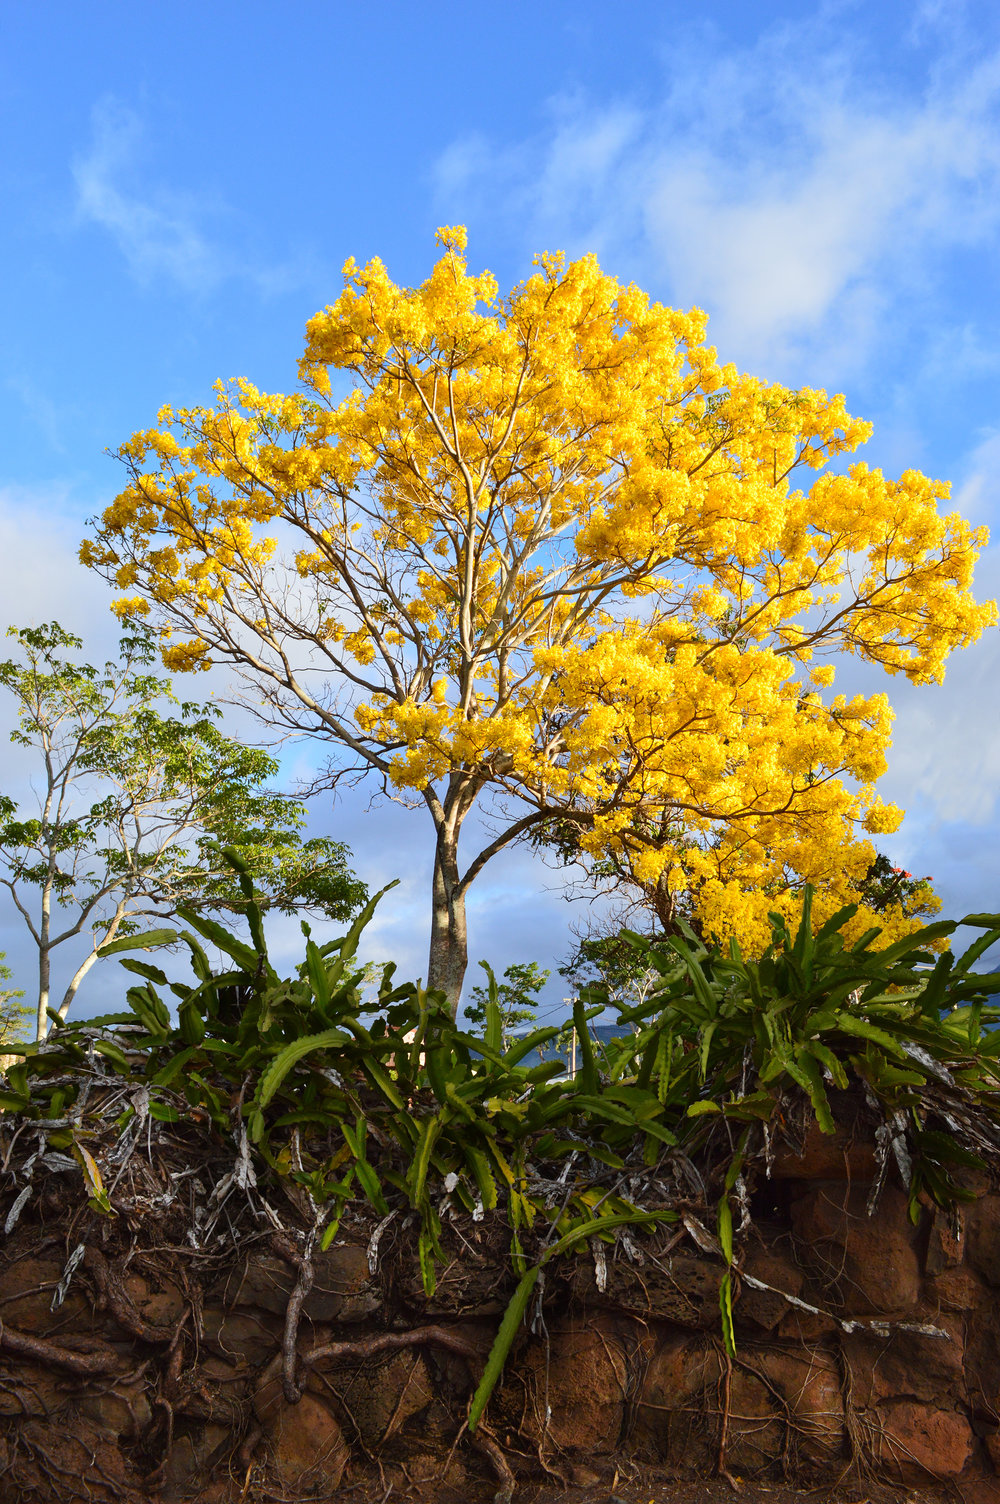 Gold Tree, Prima Vera, or Trumpet Tree in Haleiwa, Hawaii